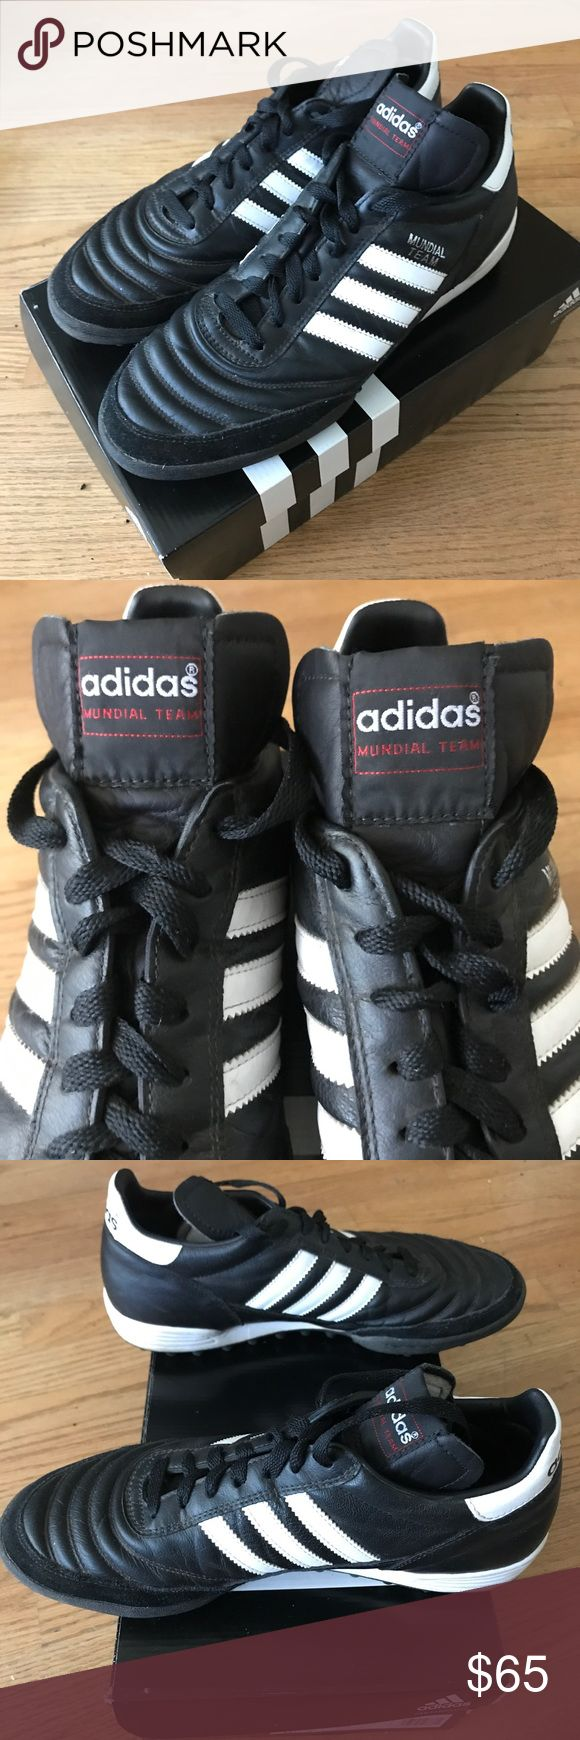 adidas Mundial Team Turfs adidas Mundial turfs worn just 3 times! Great condition with original box. adidas Shoes Athletic Shoes